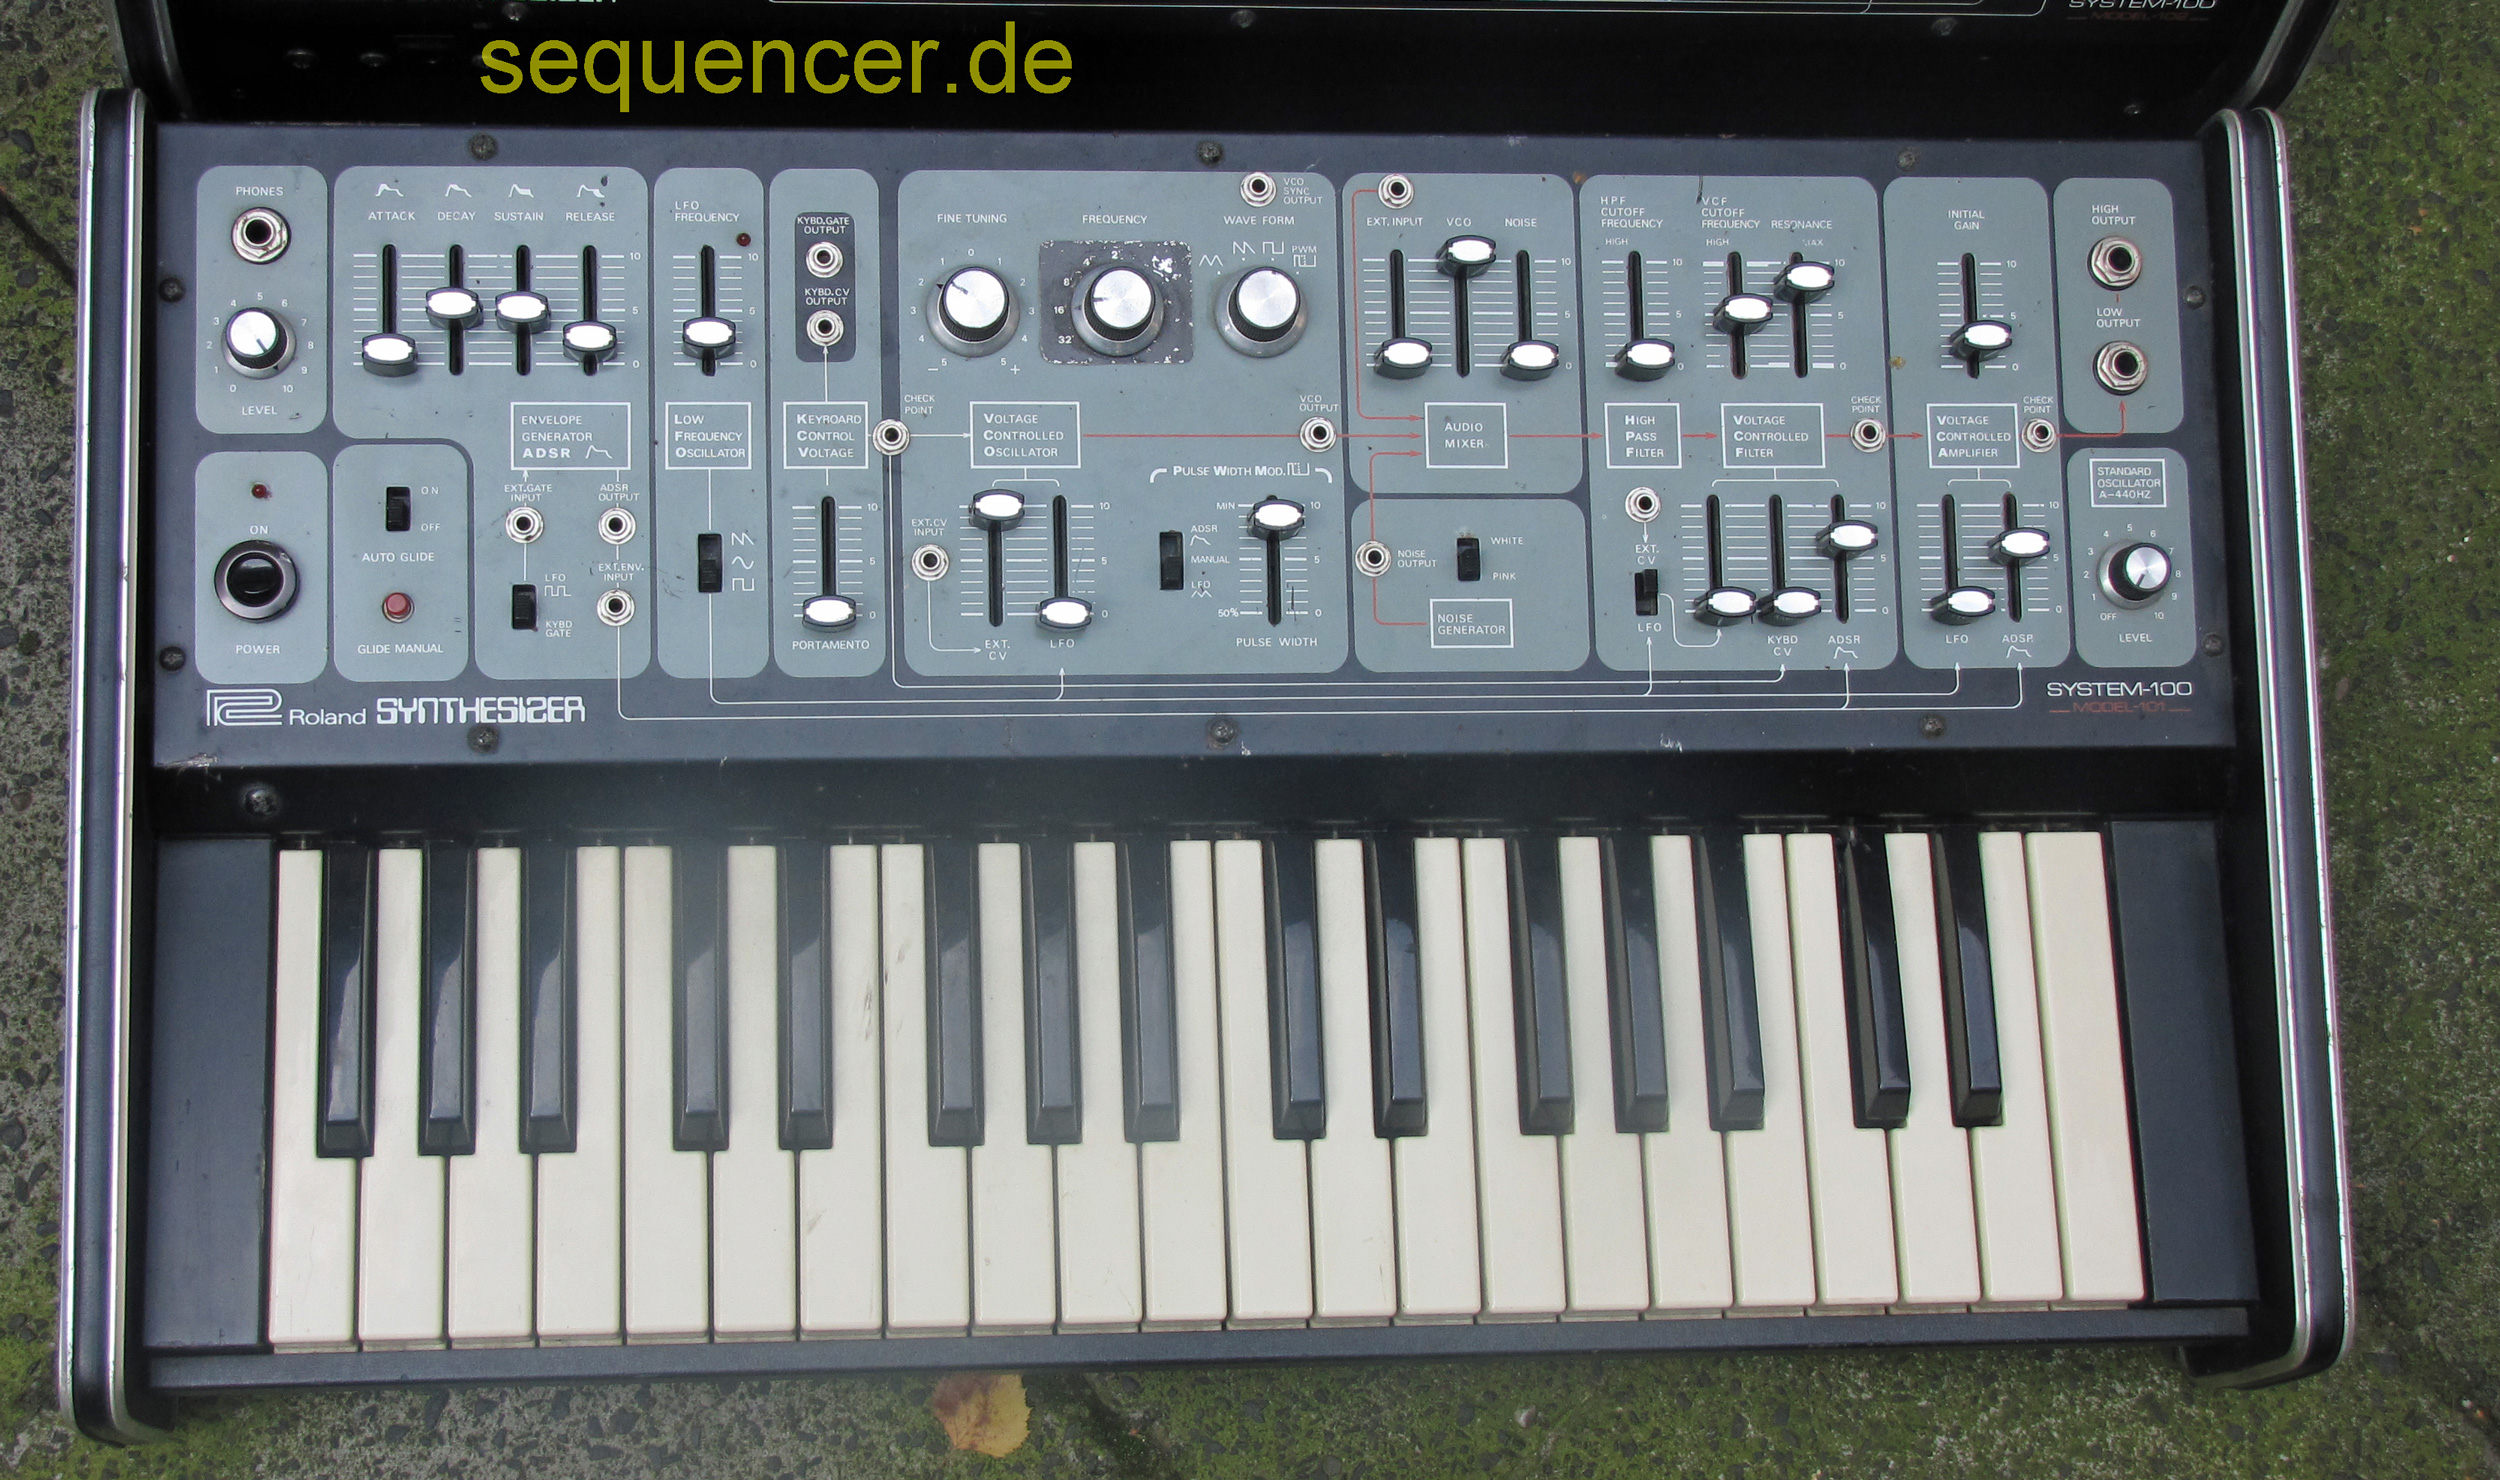 System 100 - Keyboard Typ 101 System 100 - Keyboard Type 101 synthesizer